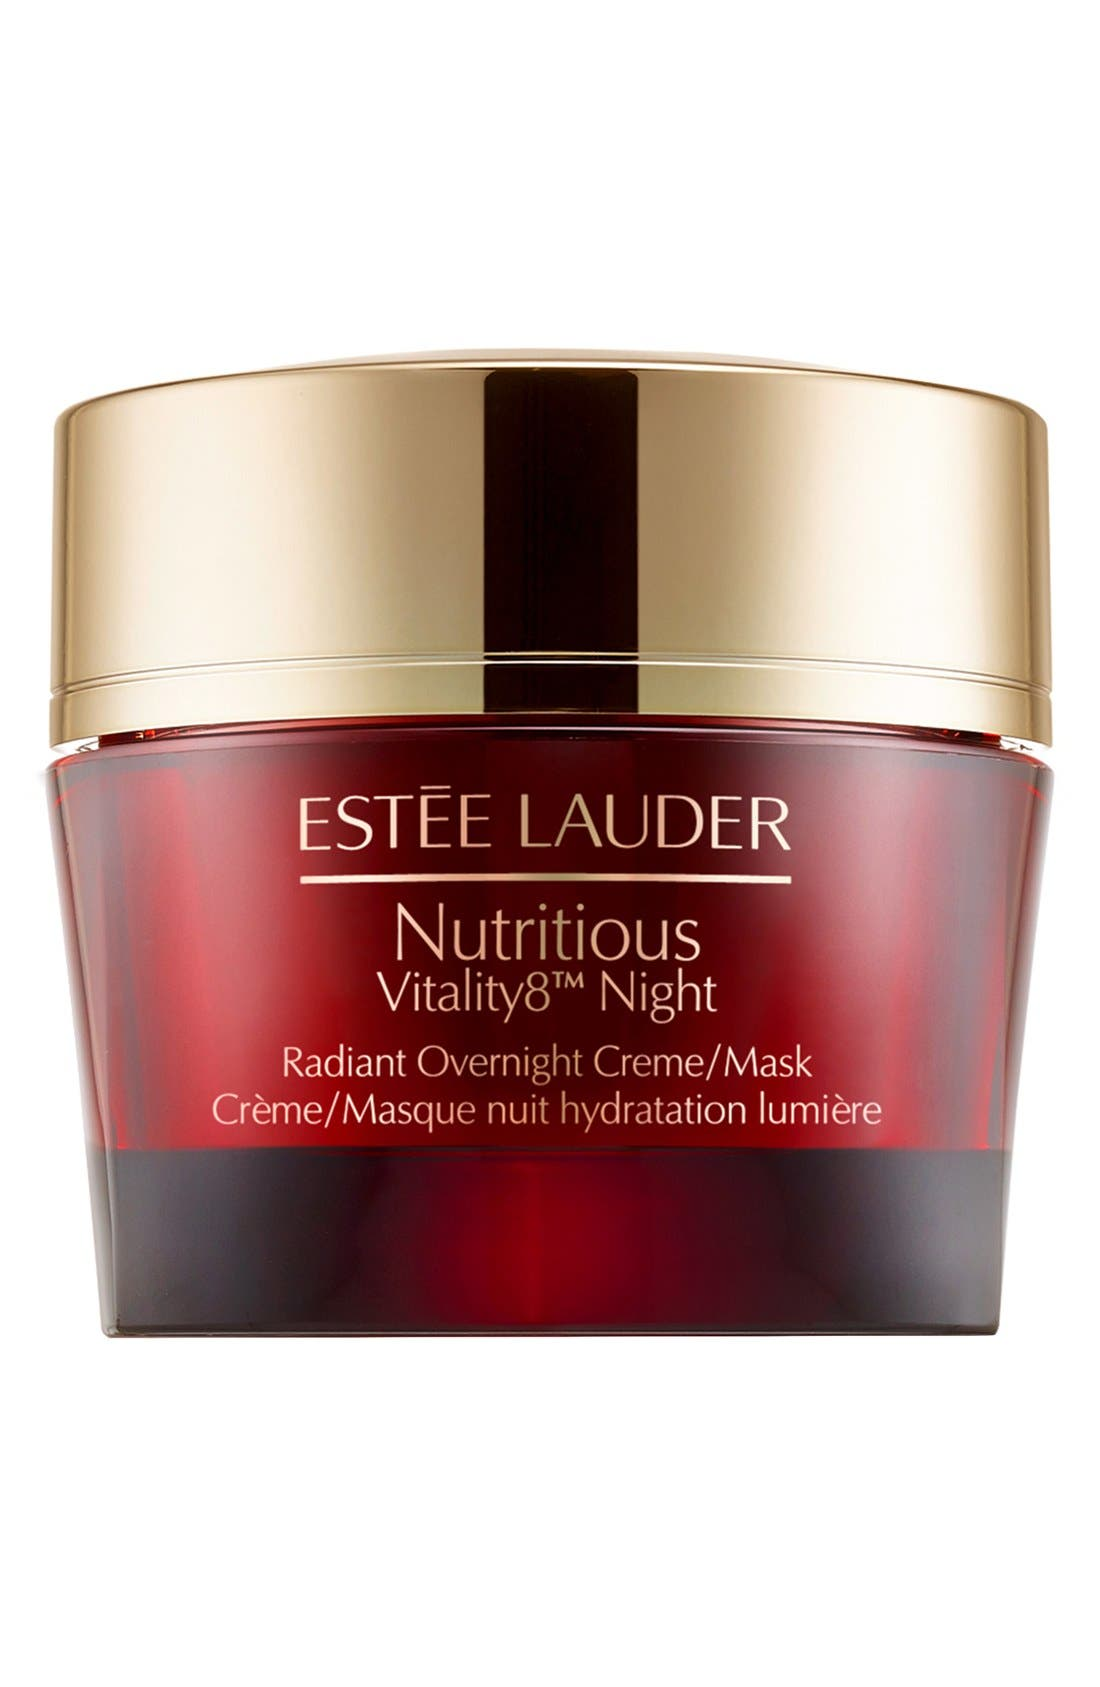 Nutritious Vitality8<sup>™</sup> Night Radiant Overnight Creme/Mask,                         Main,                         color, 000